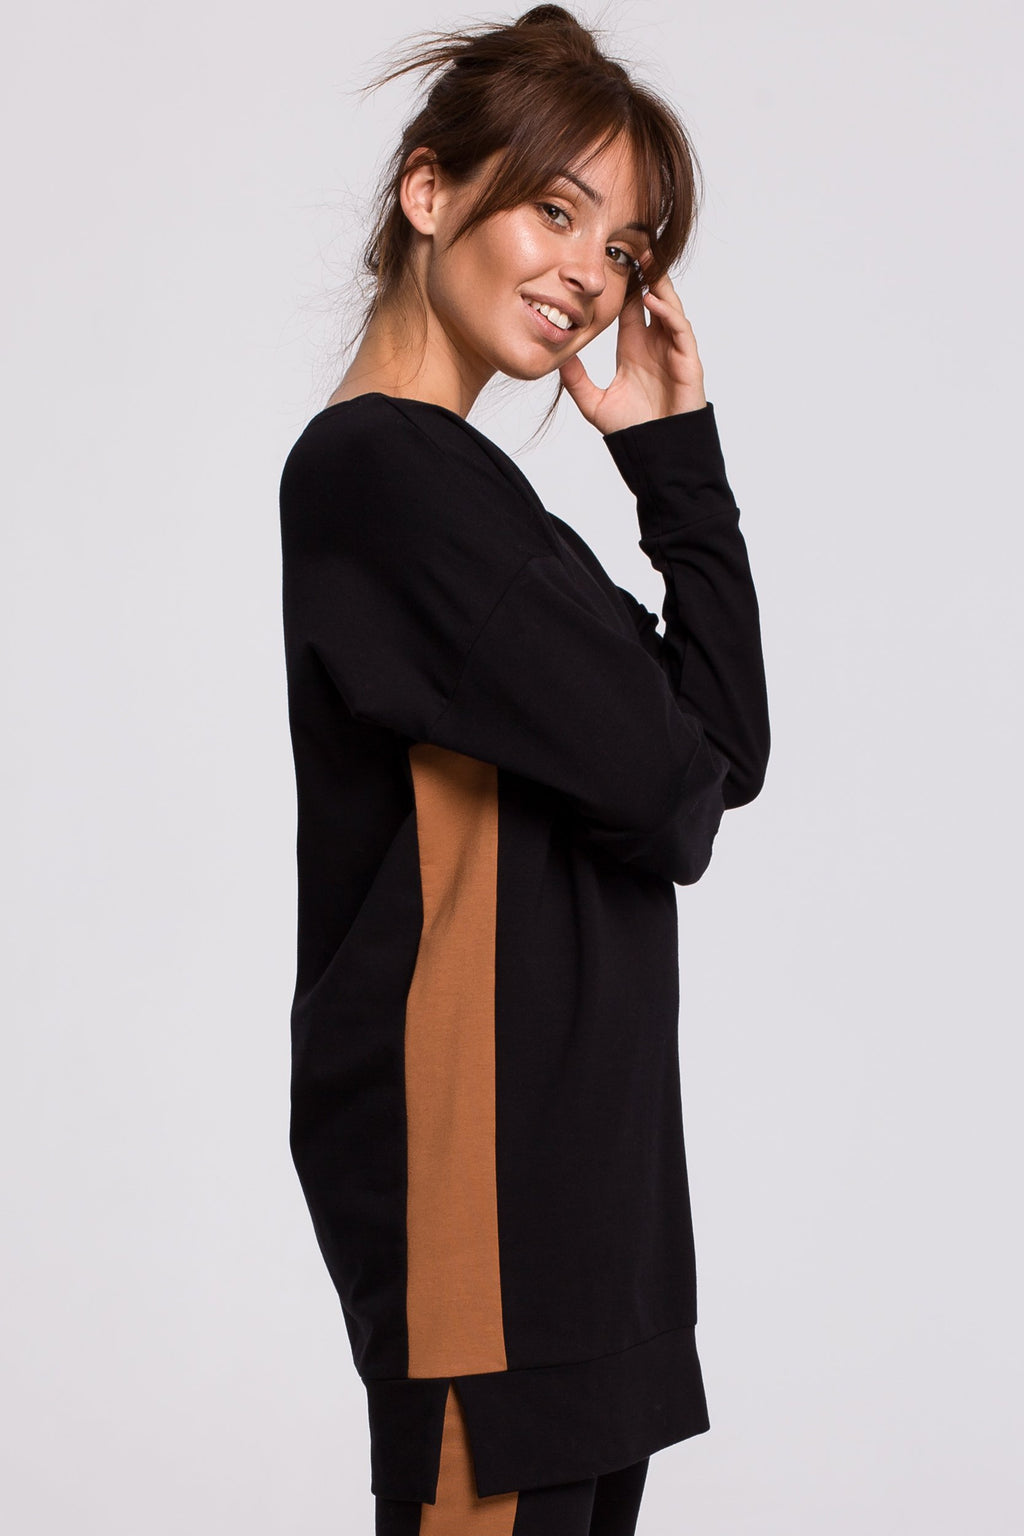 Black Cotton Long Sweatshirt With Side Stripe - So Chic Boutique